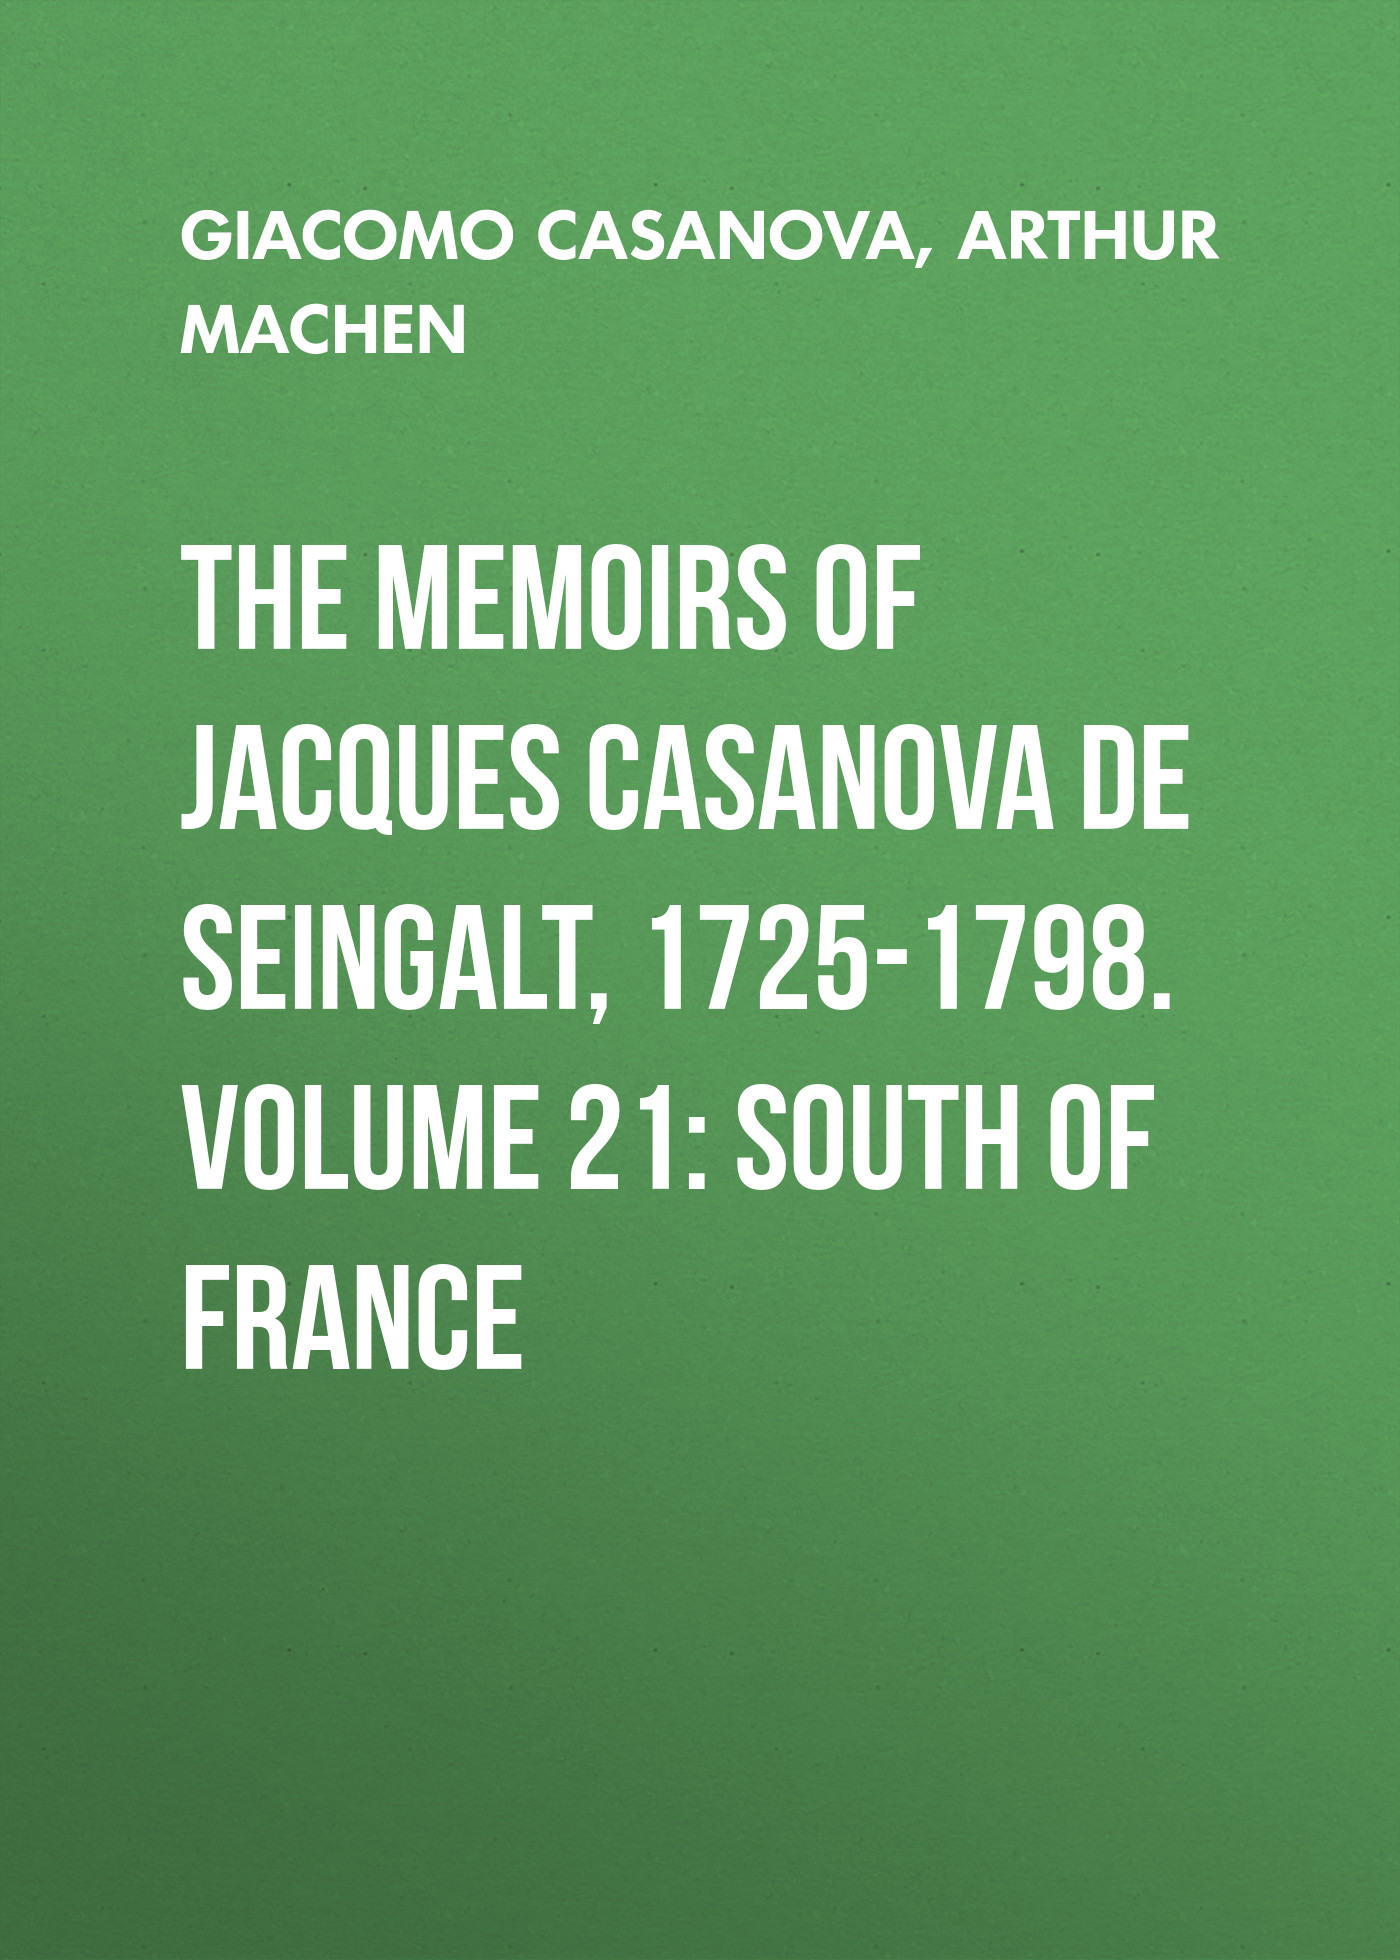 Arthur Machen The Memoirs of Jacques Casanova de Seingalt, 1725-1798. Volume 21: South of France walter de la mare memoirs of a midget